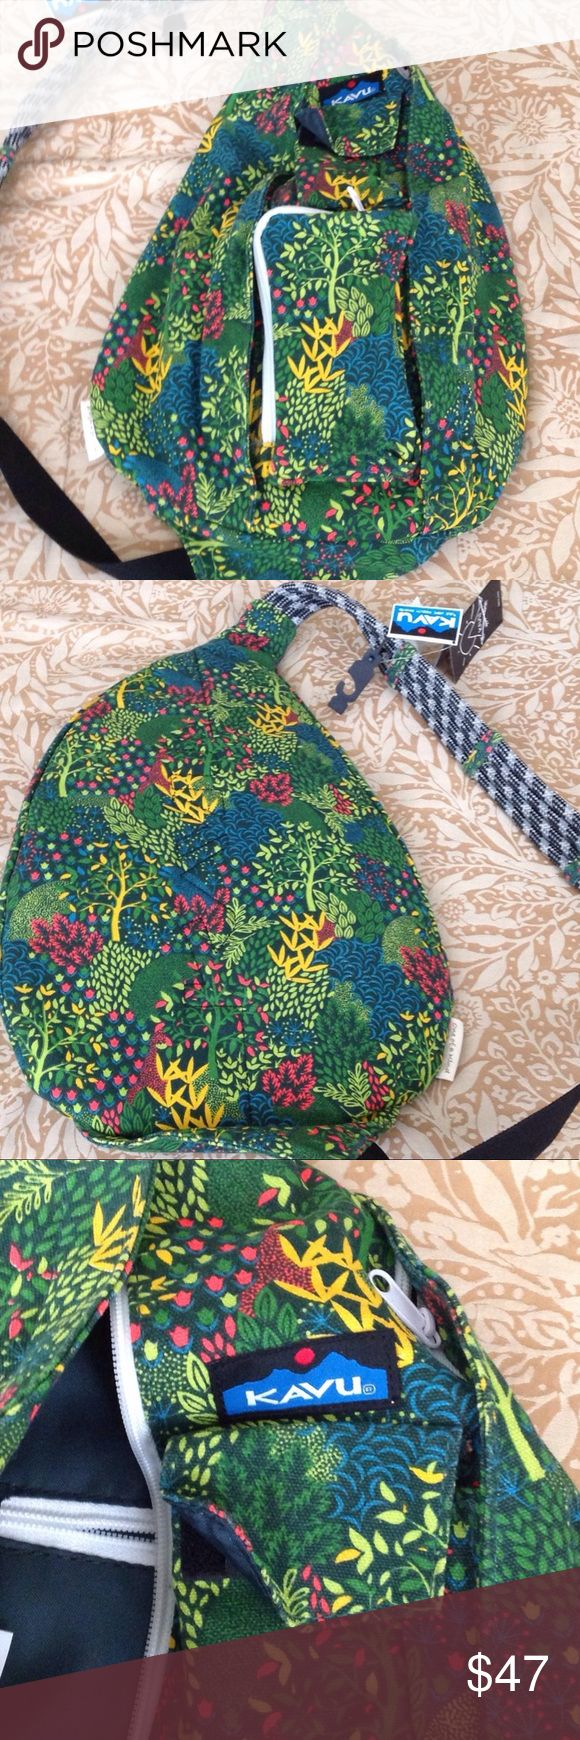 Kavu Fall Garden Rope Bag Kavu Fall Garden Rope Bag.  Brand new with tag still attached.  Great for teens, moms and women on the go.  Lightweight, lots of pockets and adjustable strap. Kavu Bags Backpacks